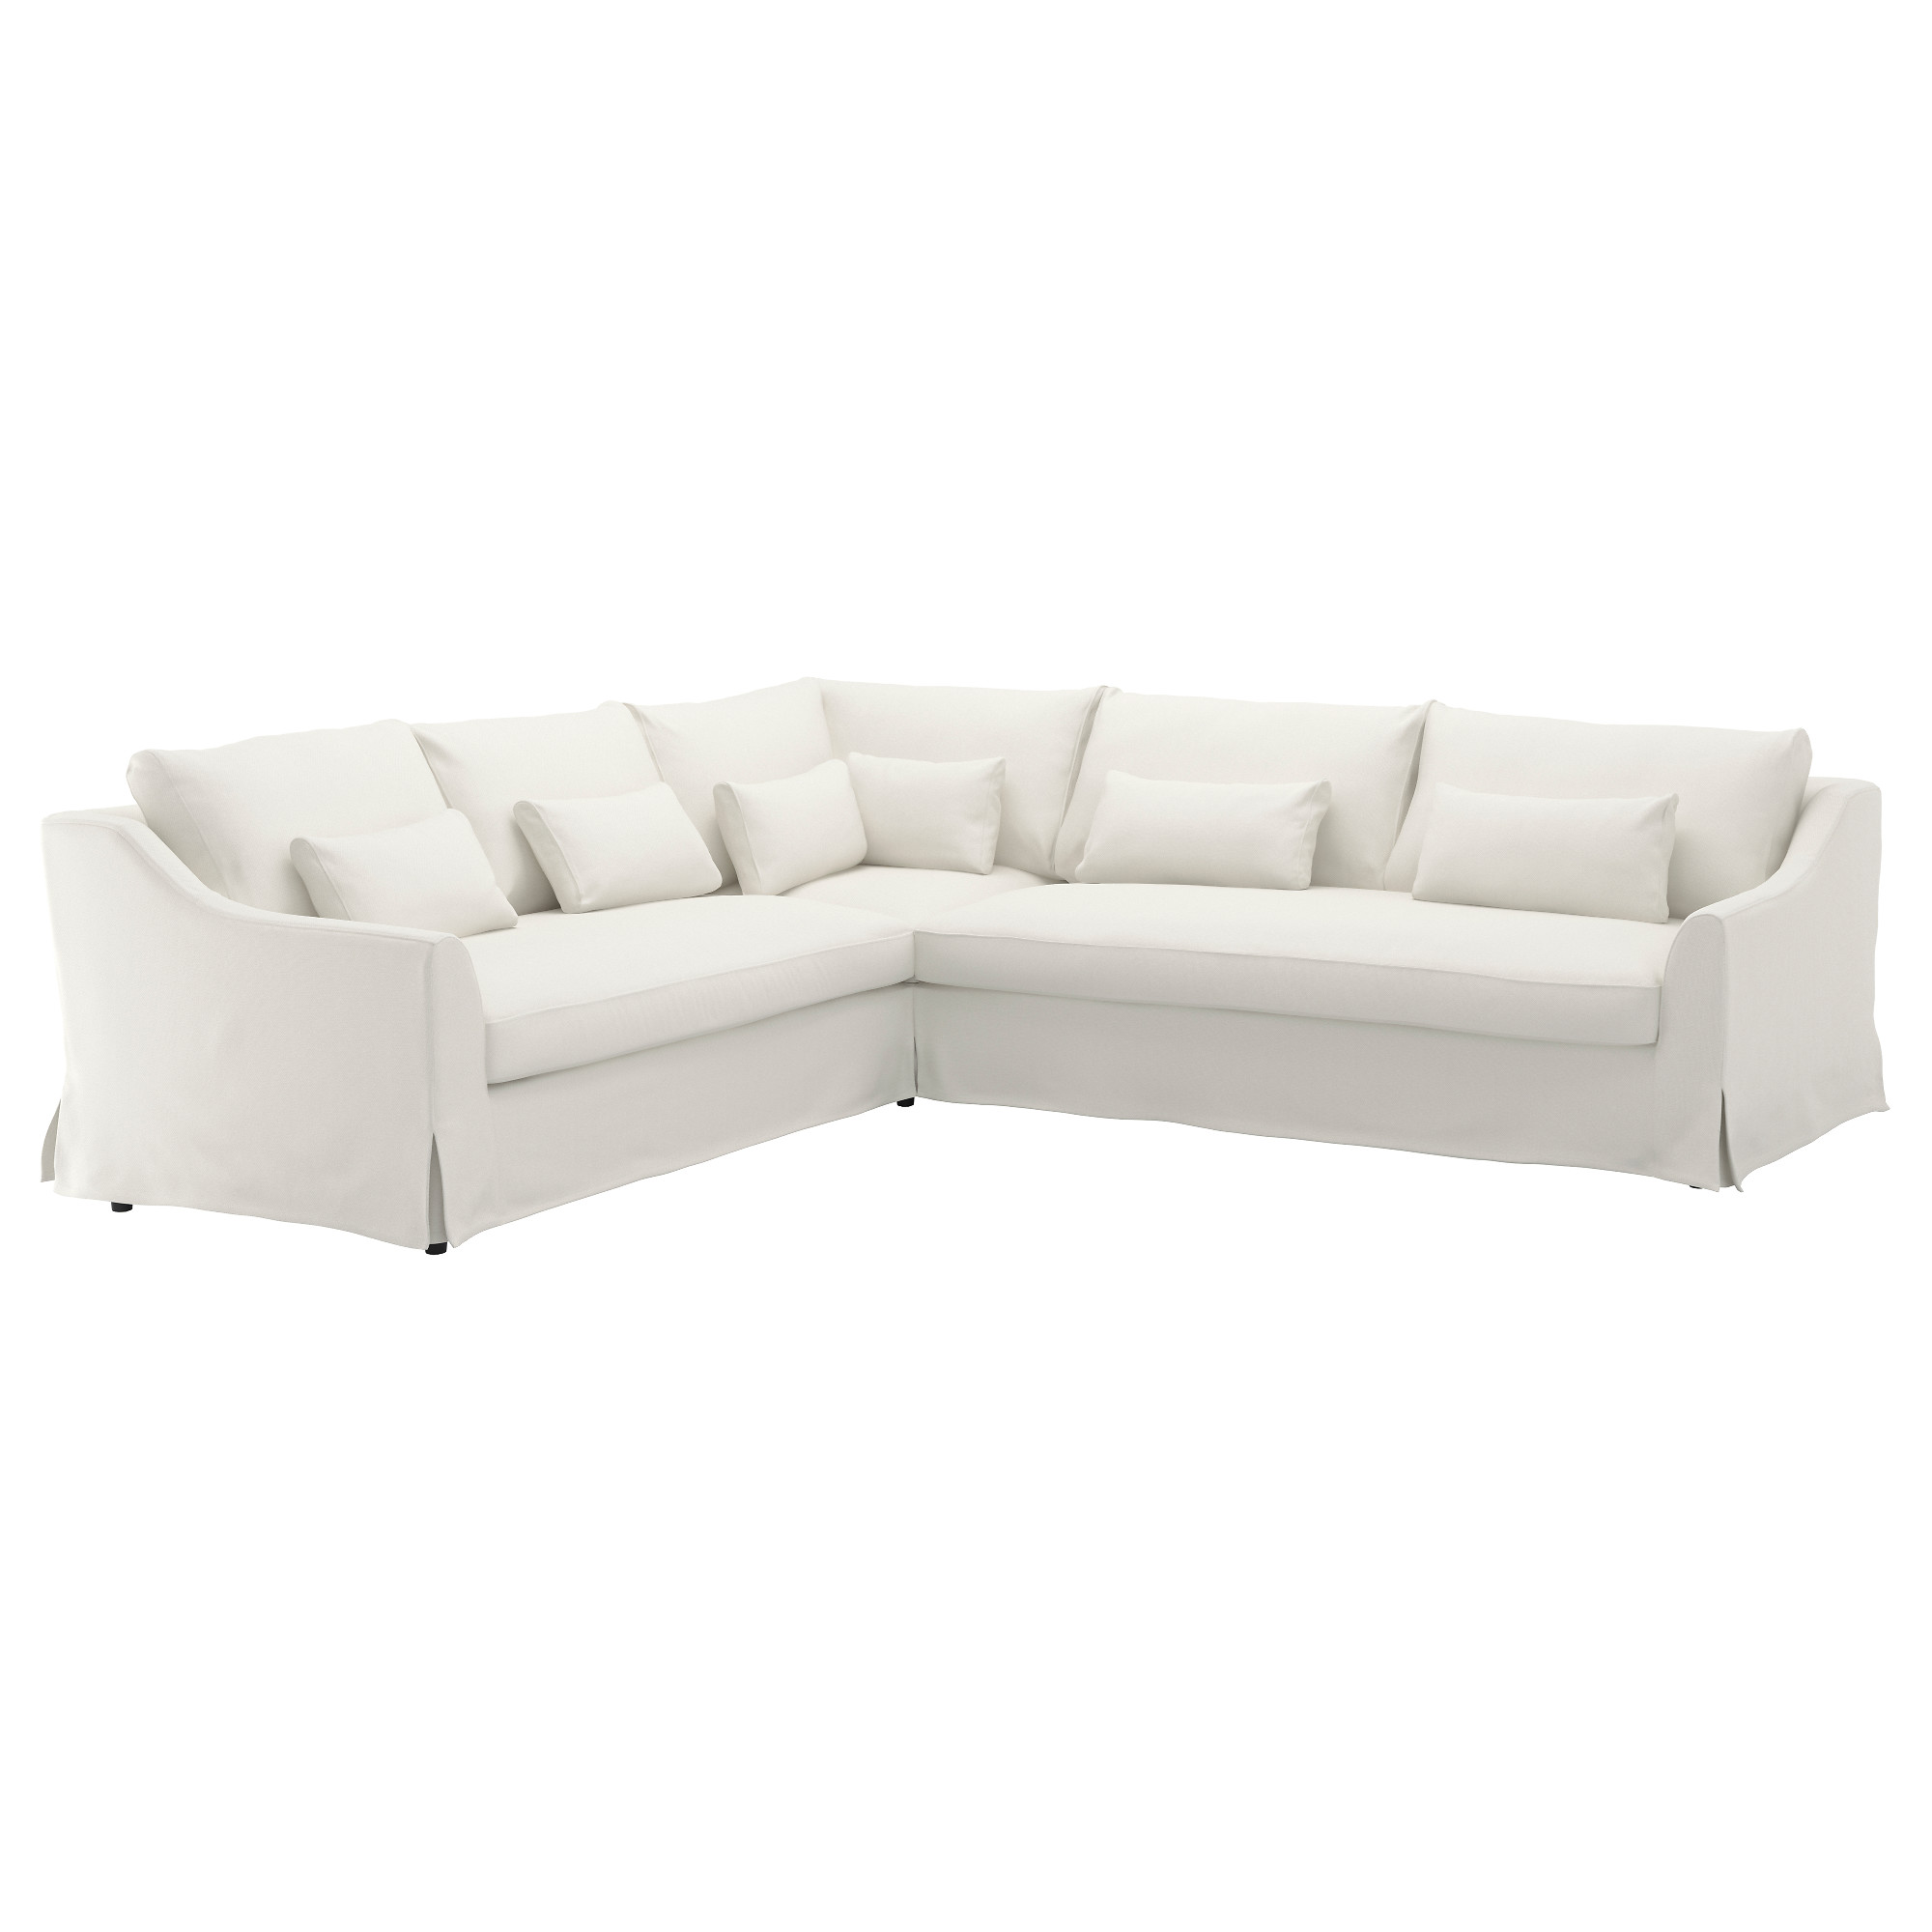 white sofa färlöv sectional,5 seat/sofa right, flodafors white height including back  cushions: OCFUIHH